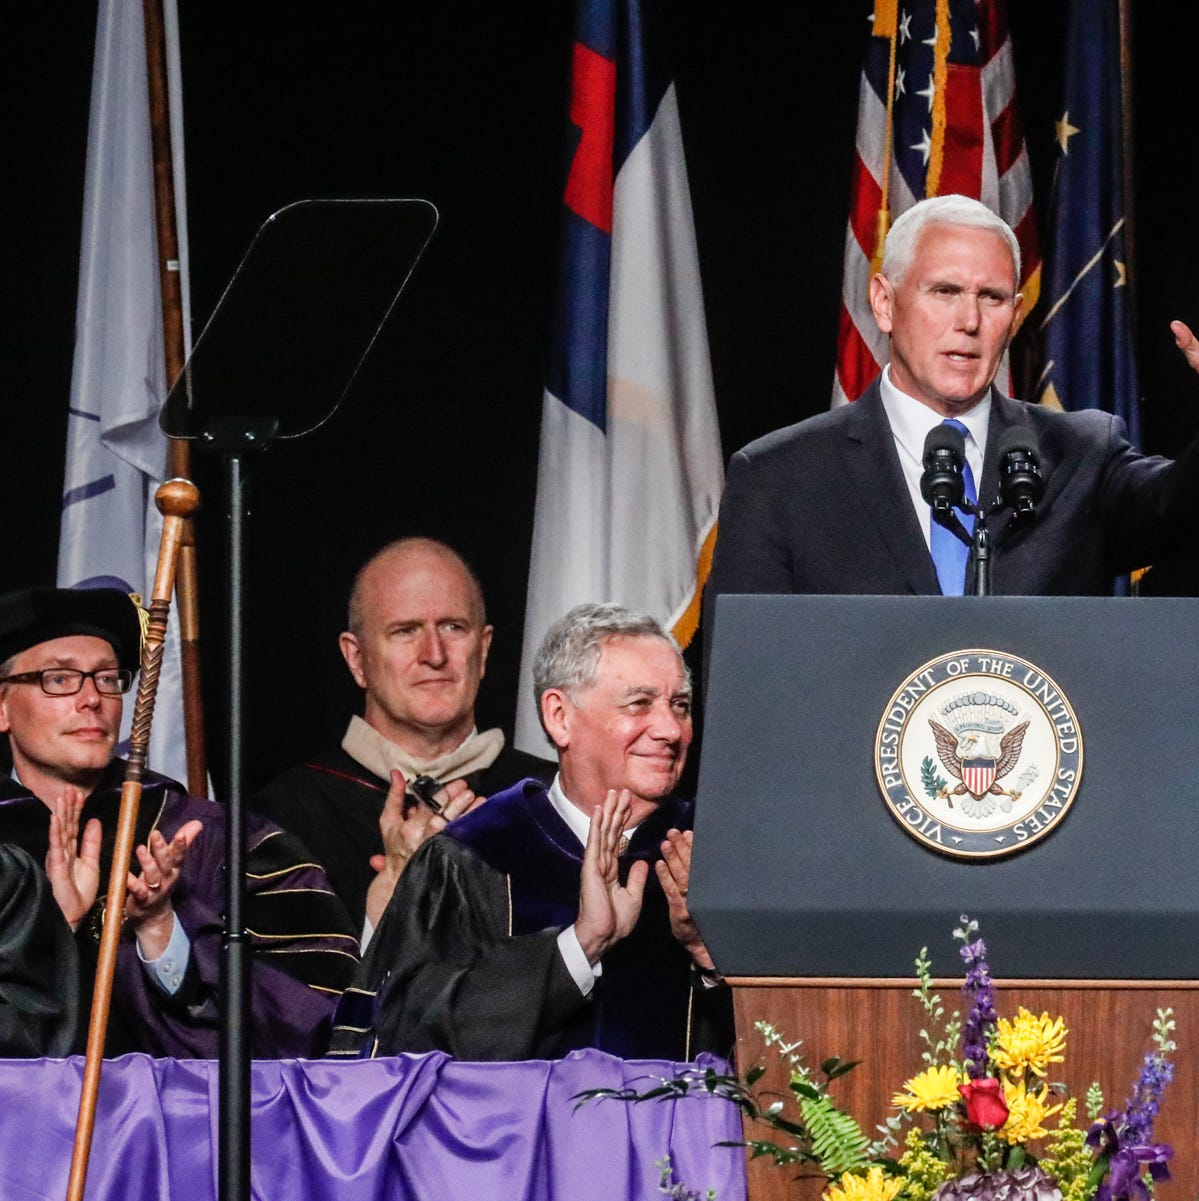 Letters: Graduates deserve 'more truthful and inspiring message' than Pence delivered